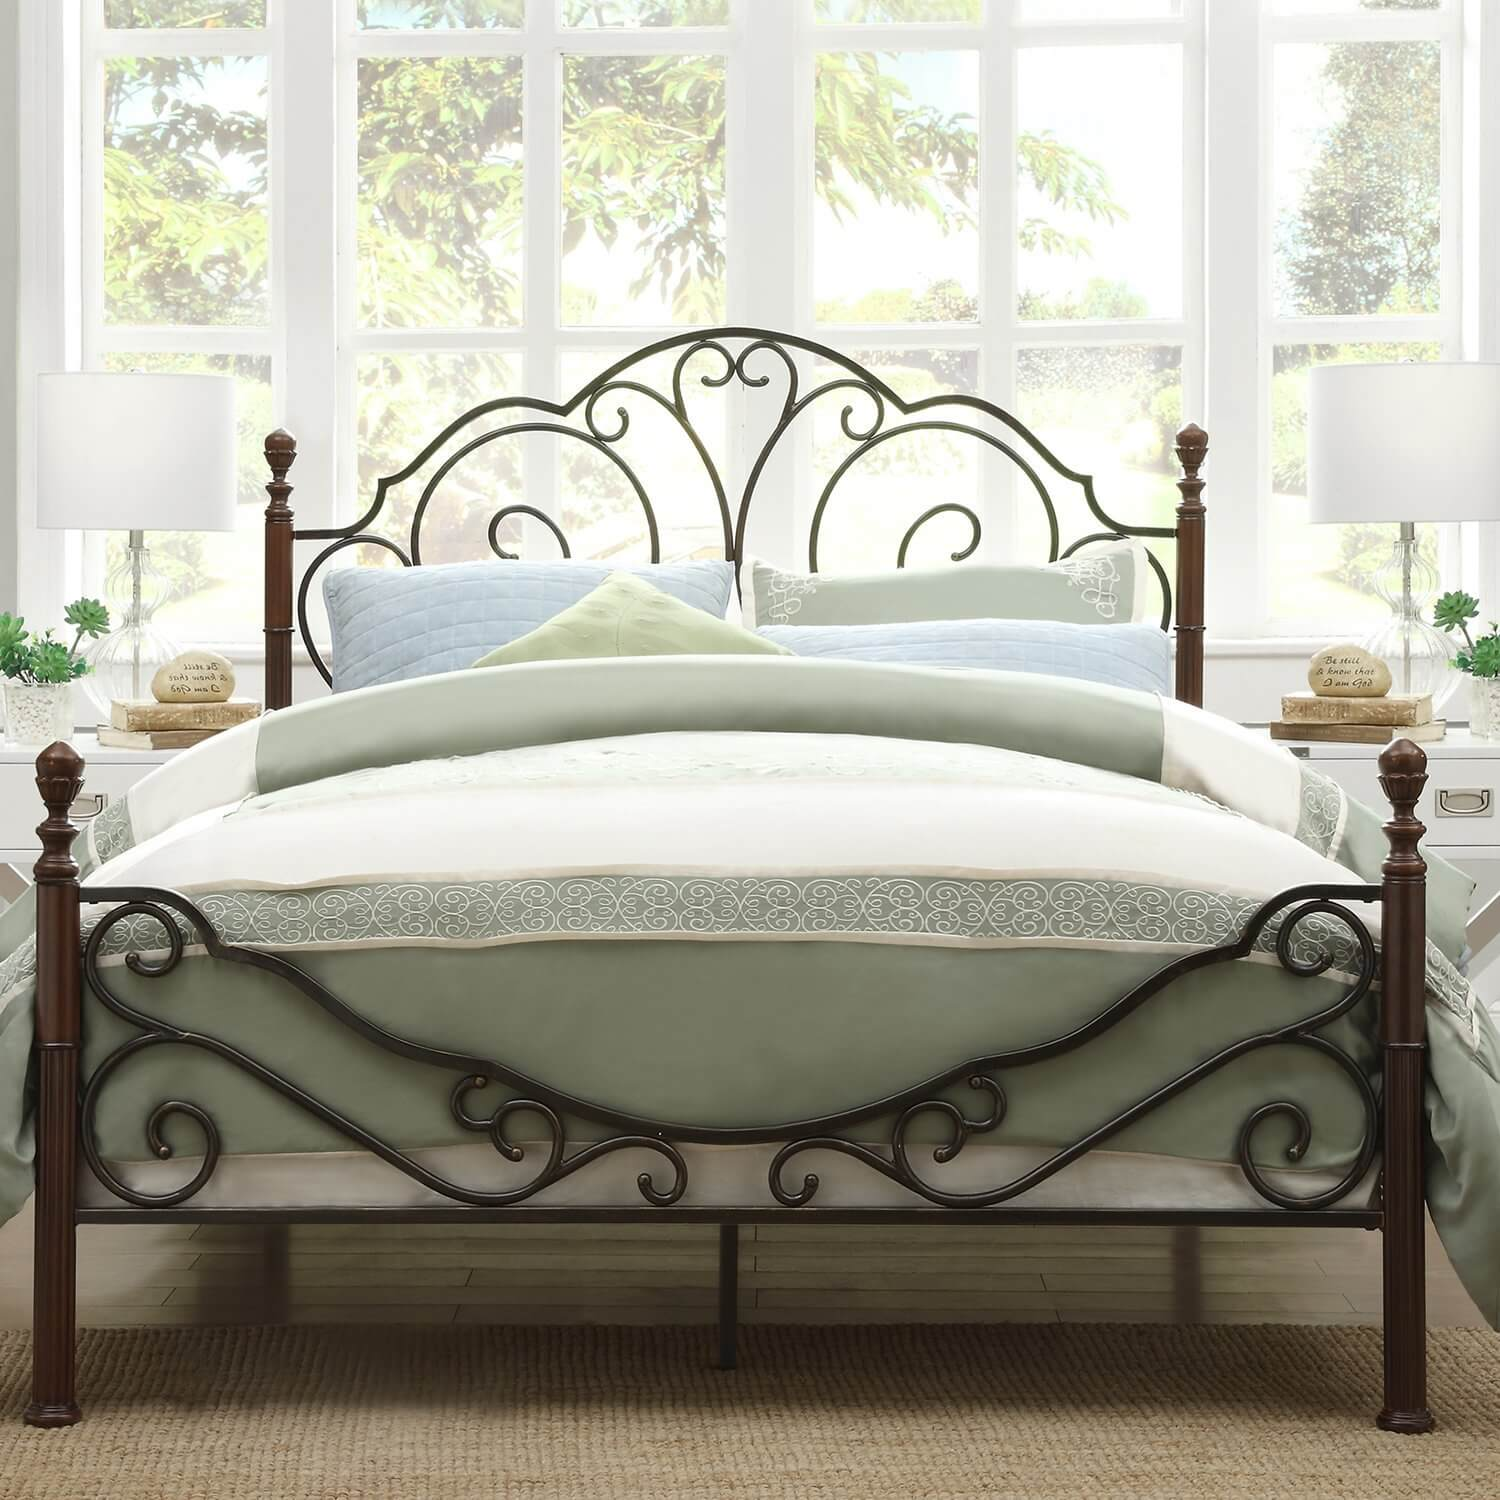 Wonderful Wrought Iron Beds Part - 8: Amazing Wrought Iron Beds That Can Be Found On Amazon? Count Me In!